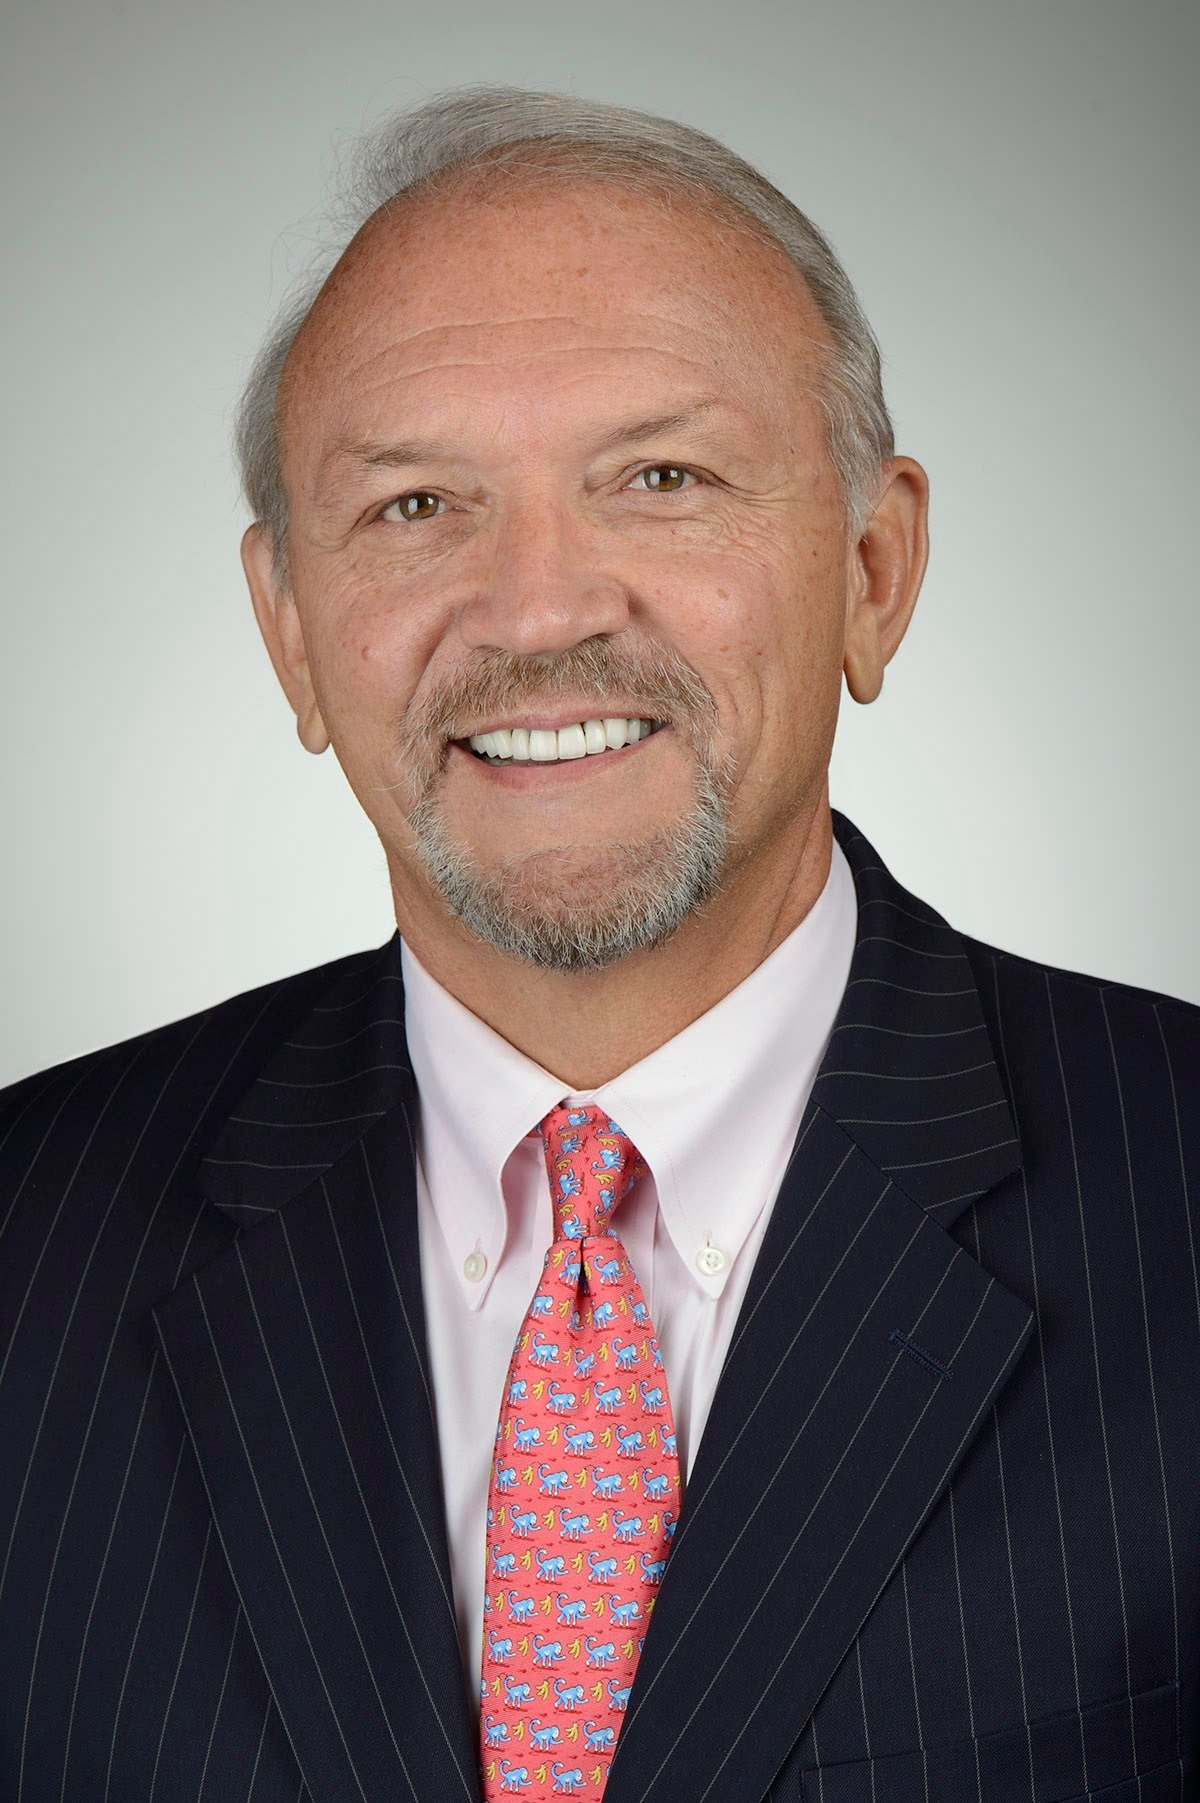 Russell Cox, president of Norton Healthcare